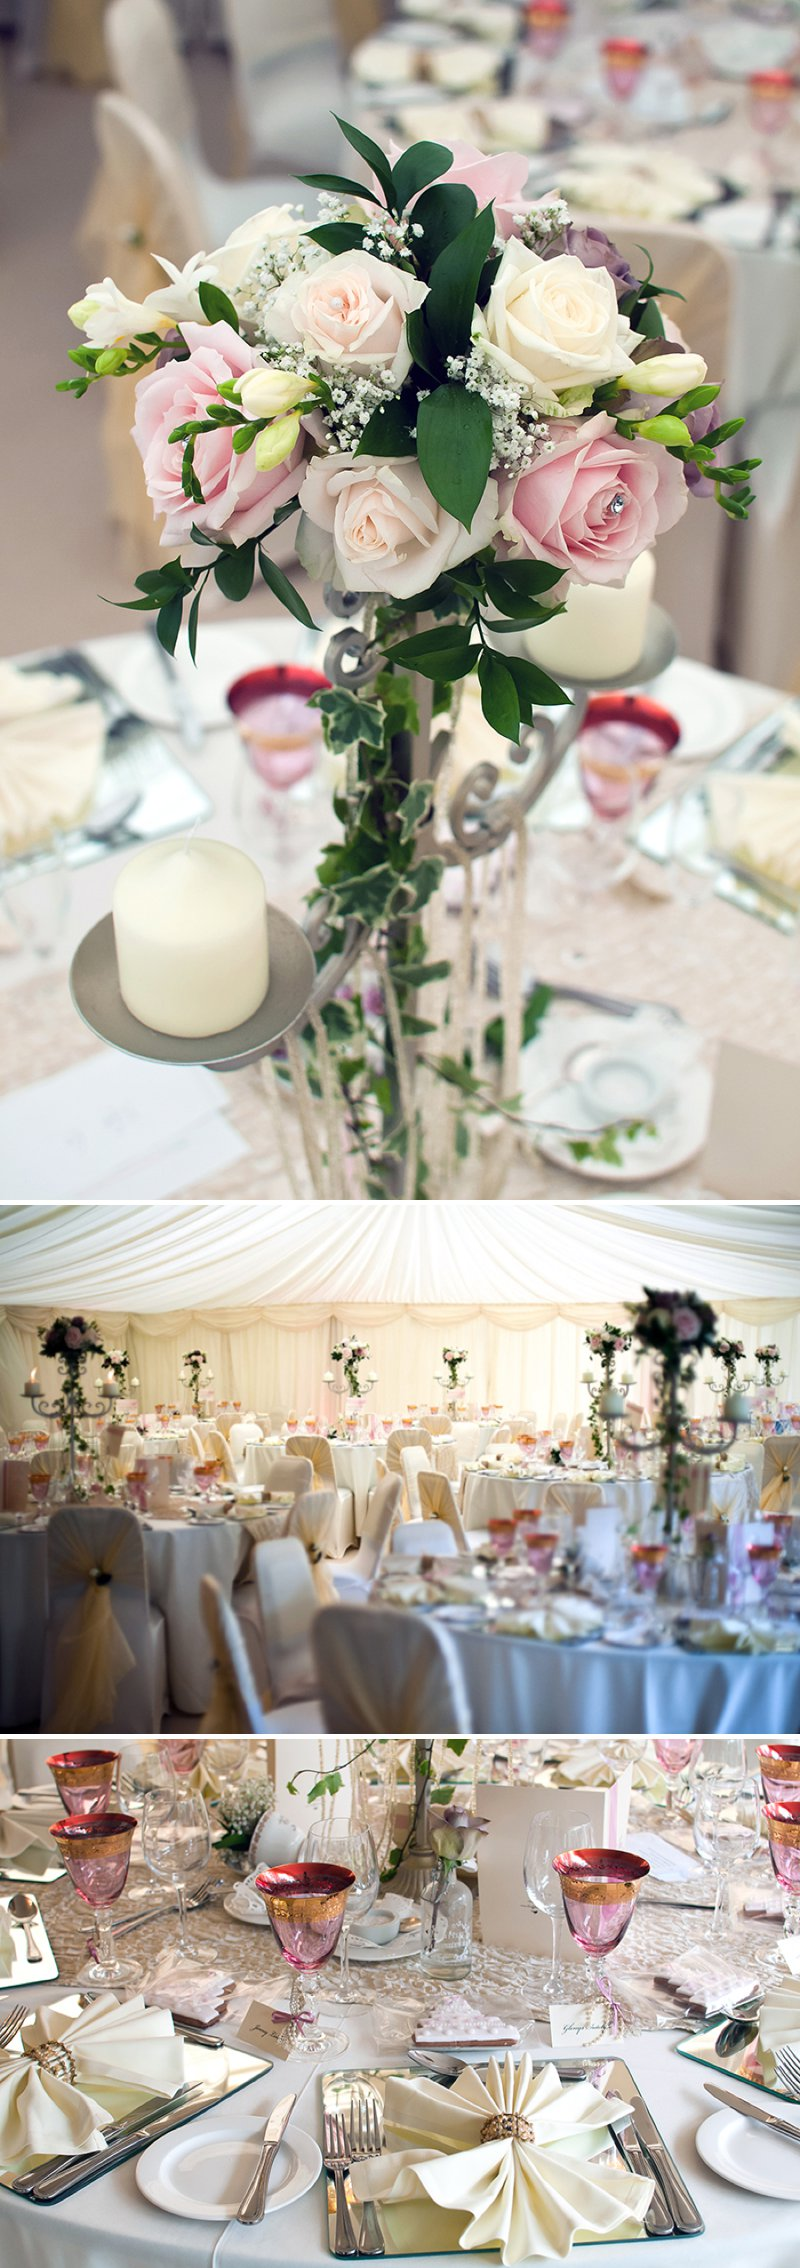 Showcase Of Work From Pumpkin Events The West Midlands Wedding Industry Award Winners For Best Venue Styling Company 2014 3